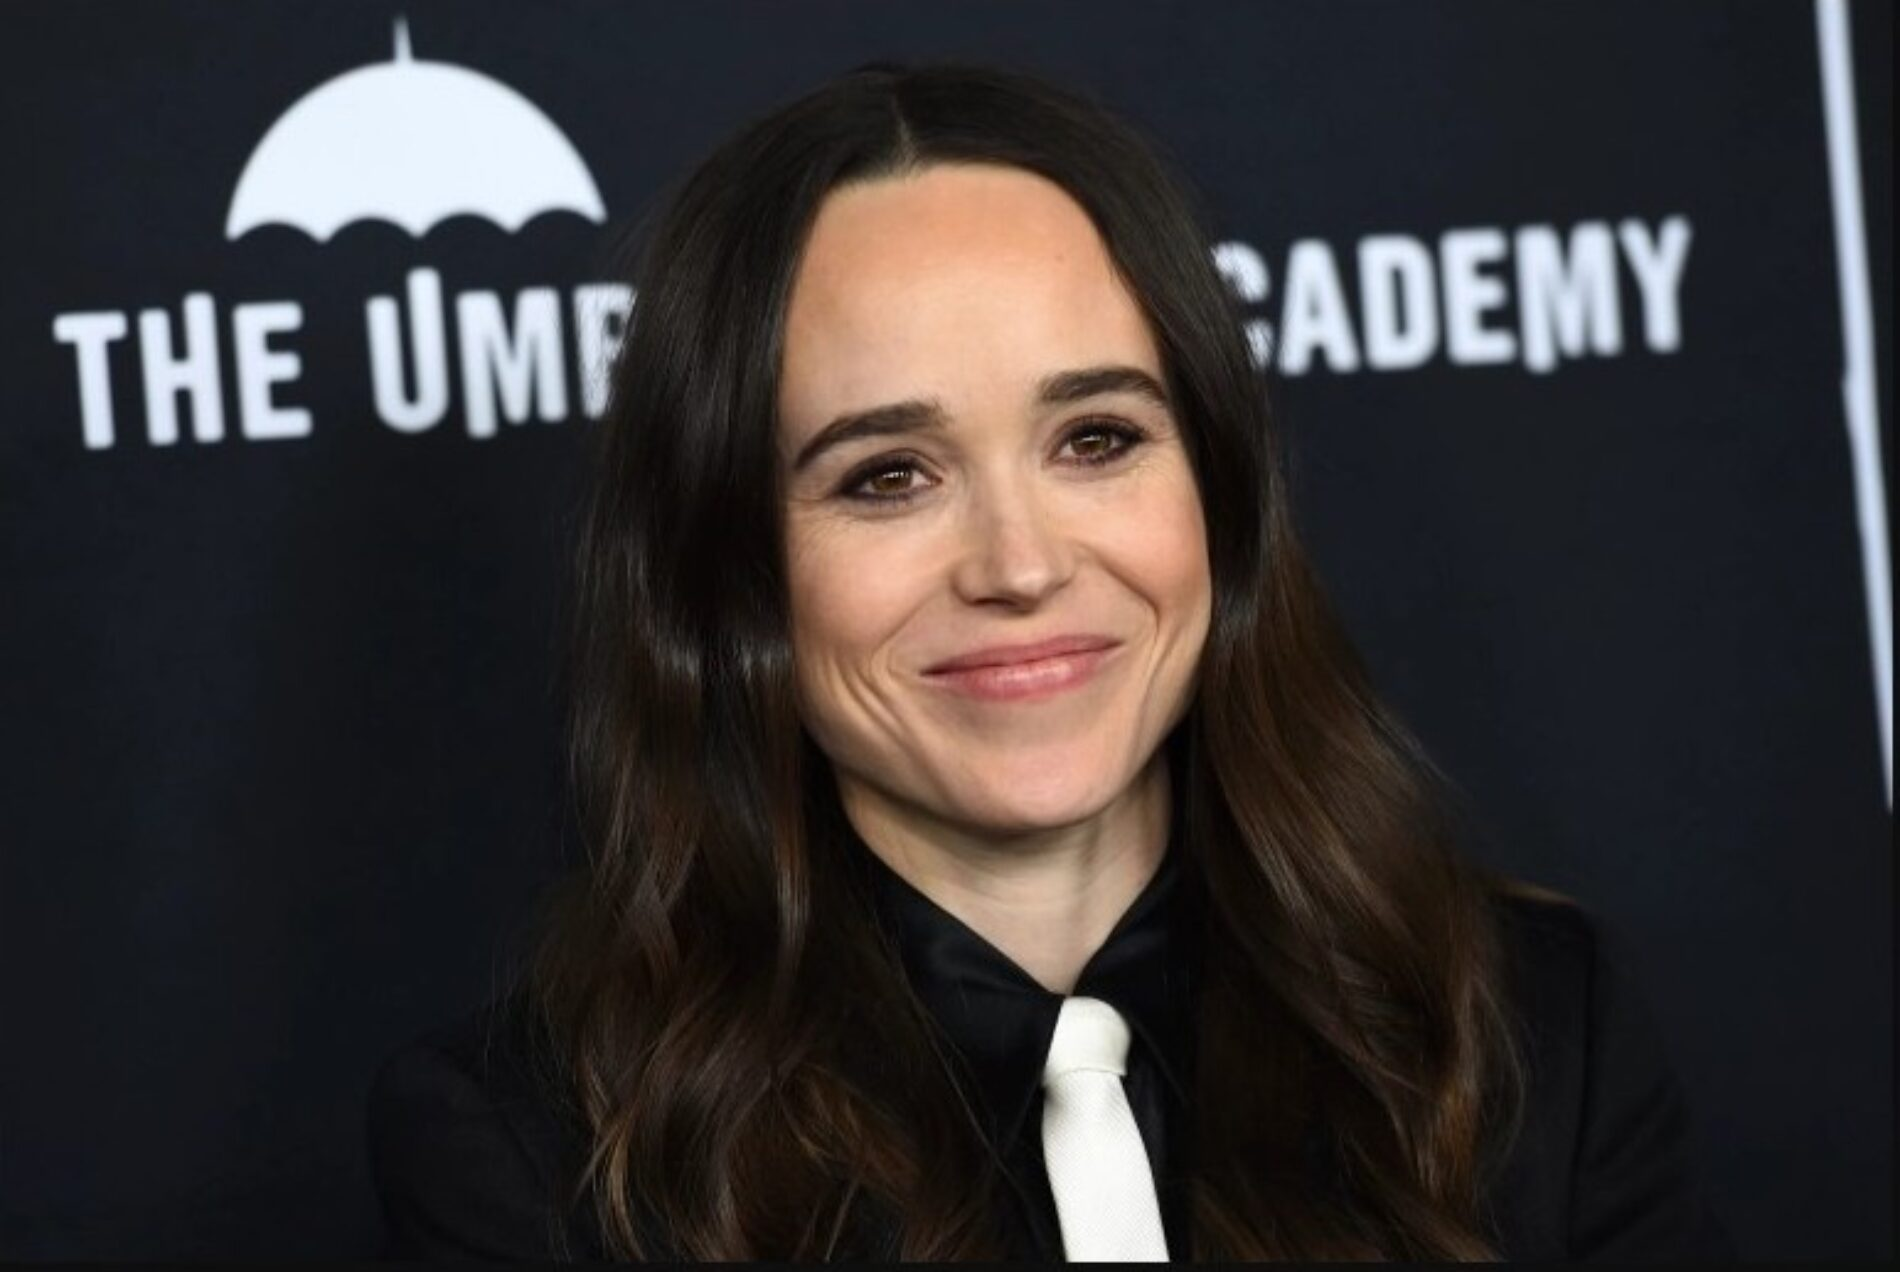 'Umbrella Academy' star Elliot Page comes out as transgender